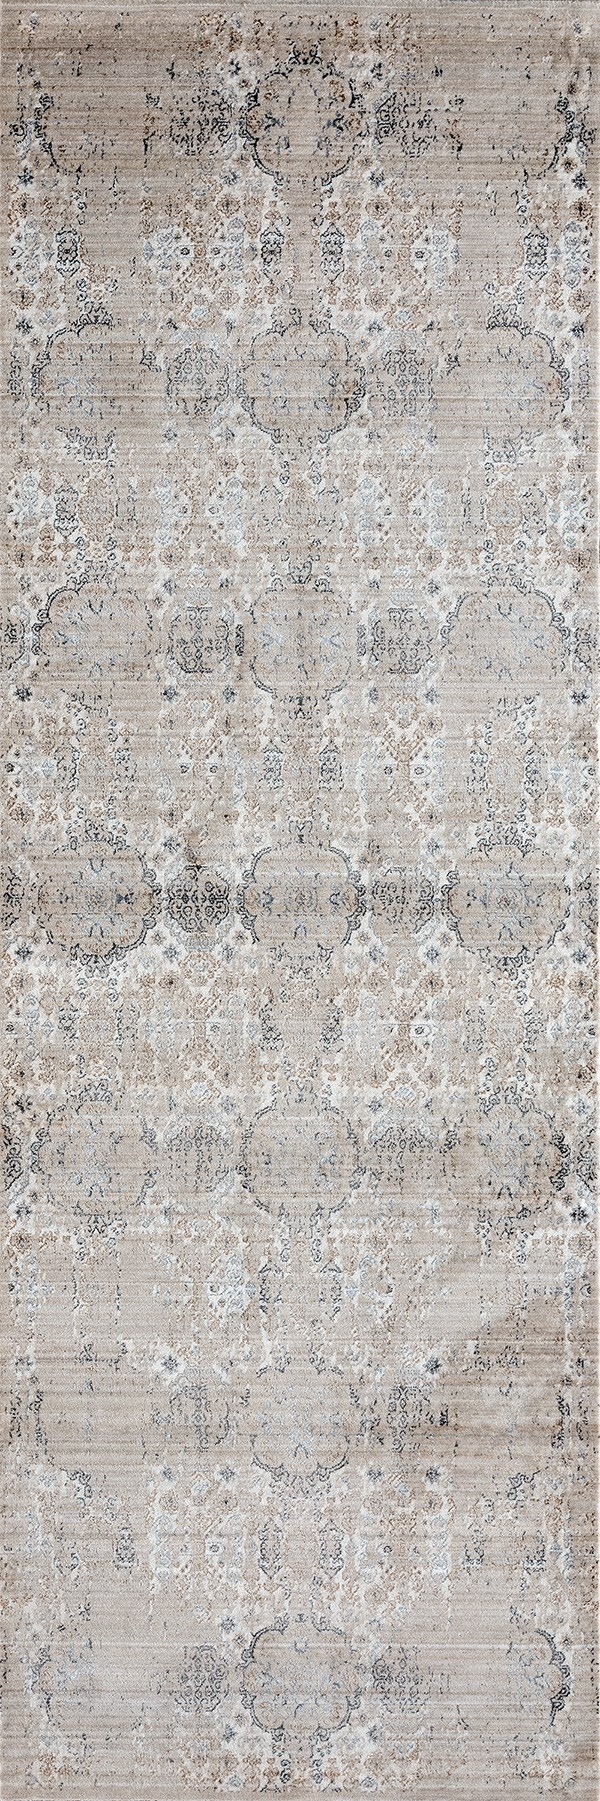 Light Taupe (1805-40293) Vintage / Overdyed Area Rug